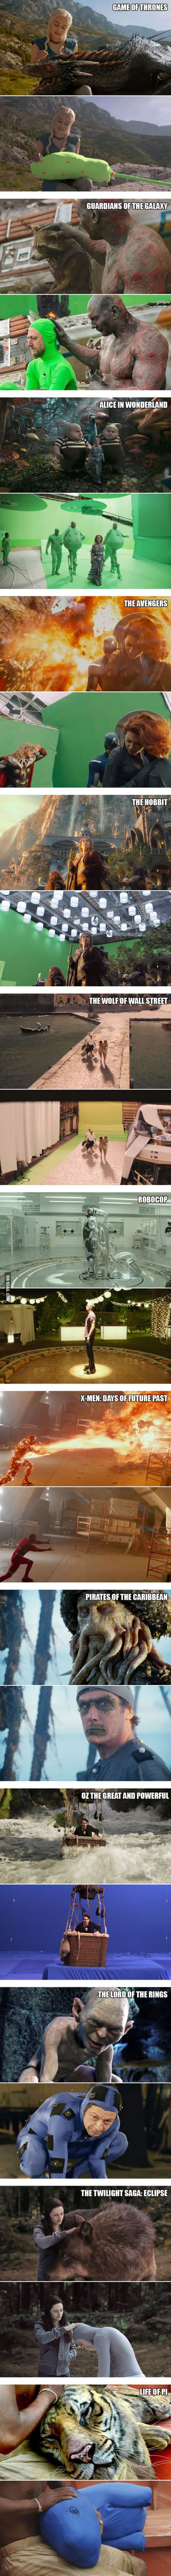 Movie Scenes Before And After Special Effects is part of Funny - More memes, funny videos and pics on 9GAG